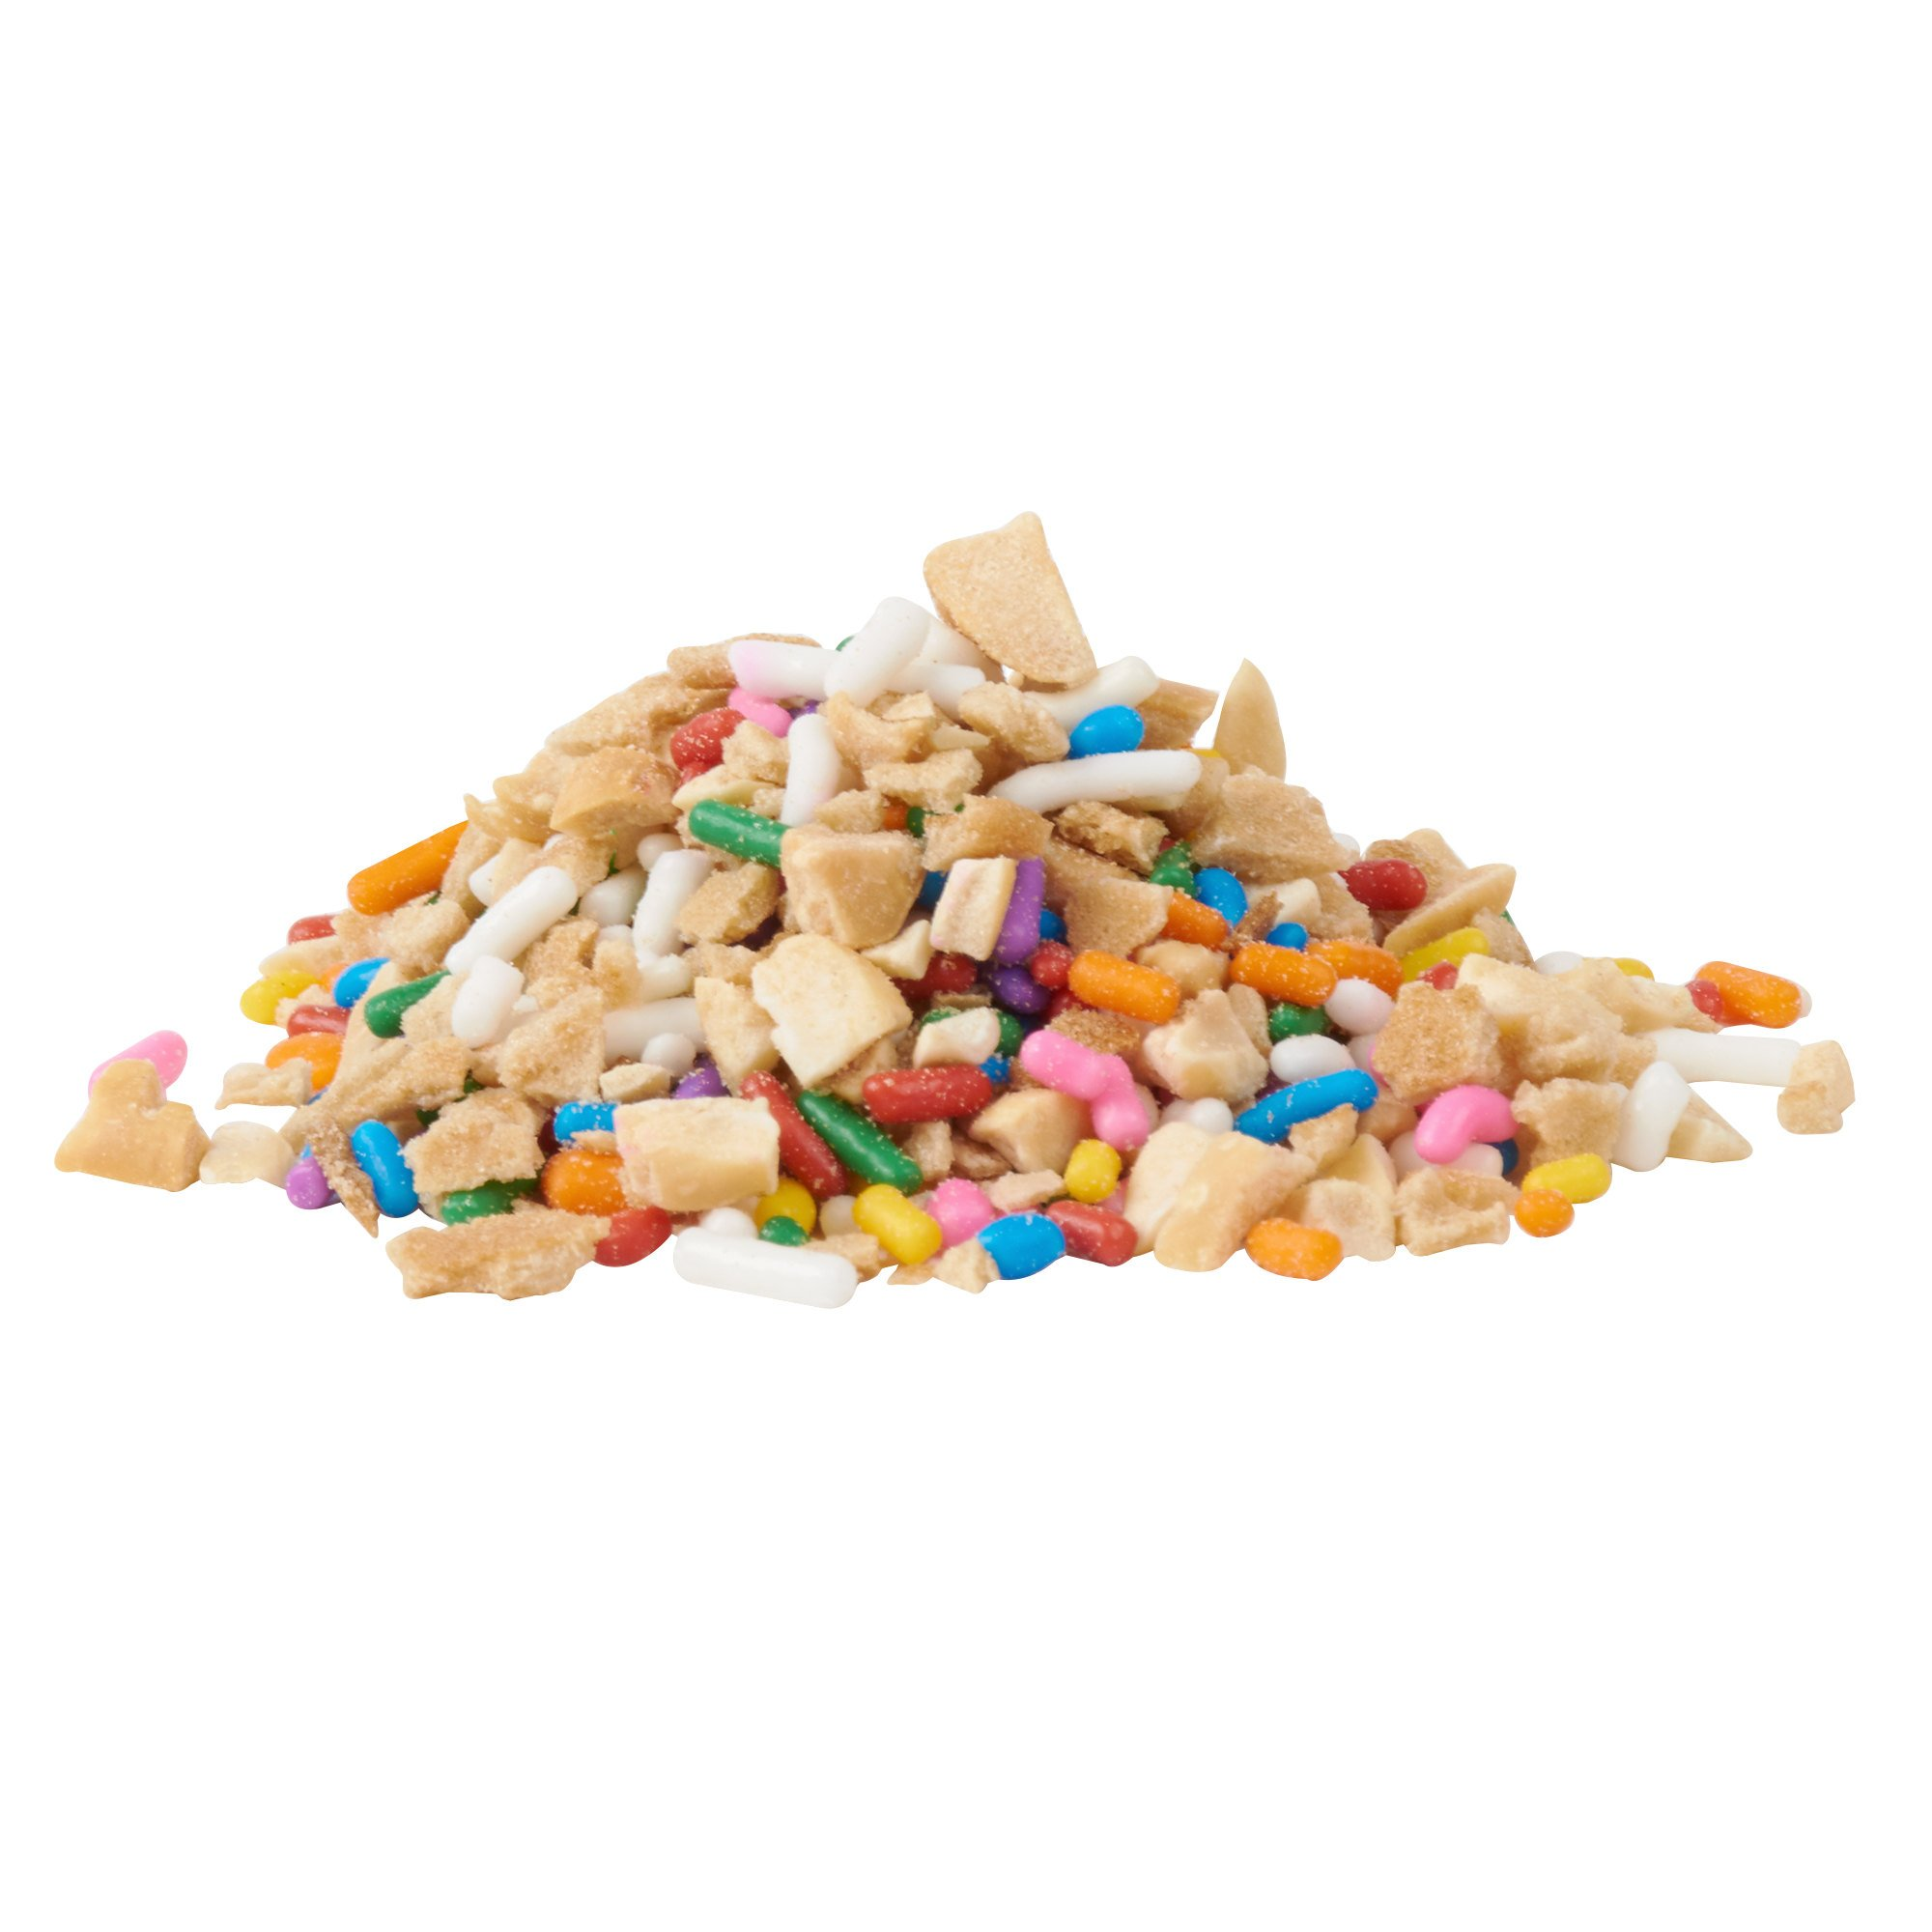 TableTop King Dutch Treat Twinkle Nut Crunch Candy Ice Cream Topping - 10 lb. by TableTop King (Image #3)